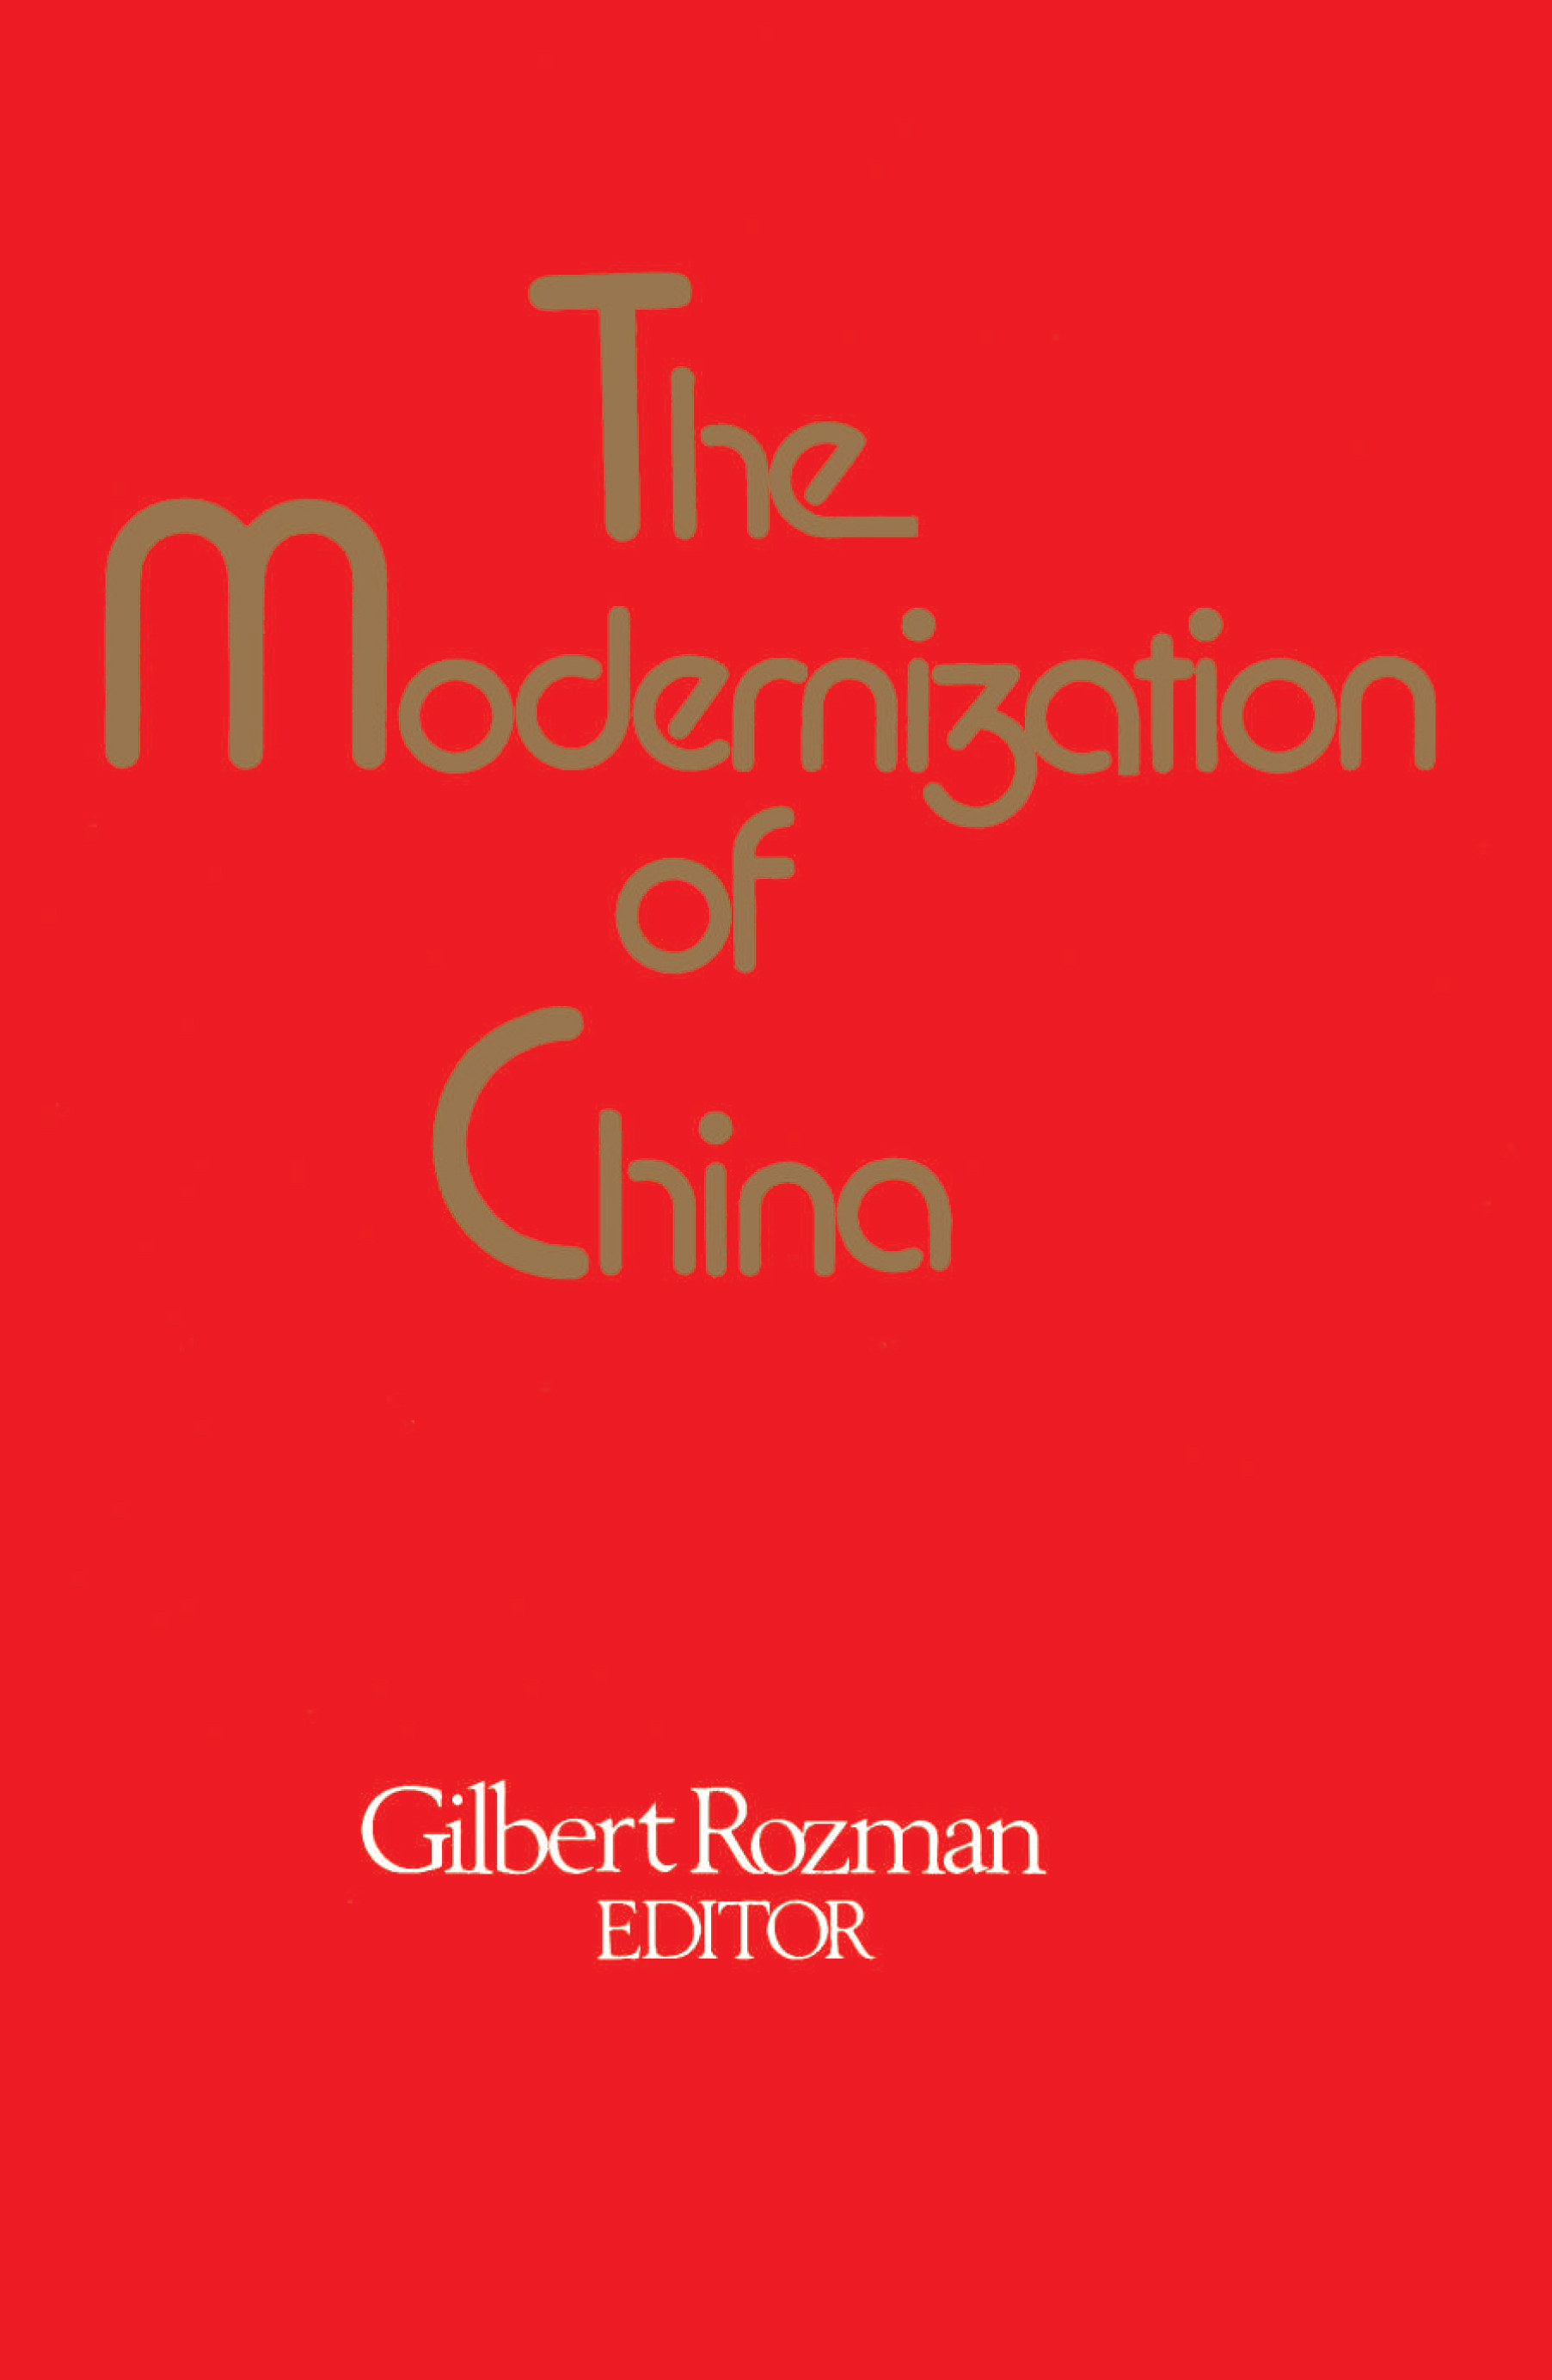 the use of the modernization in china by gilbert rozman